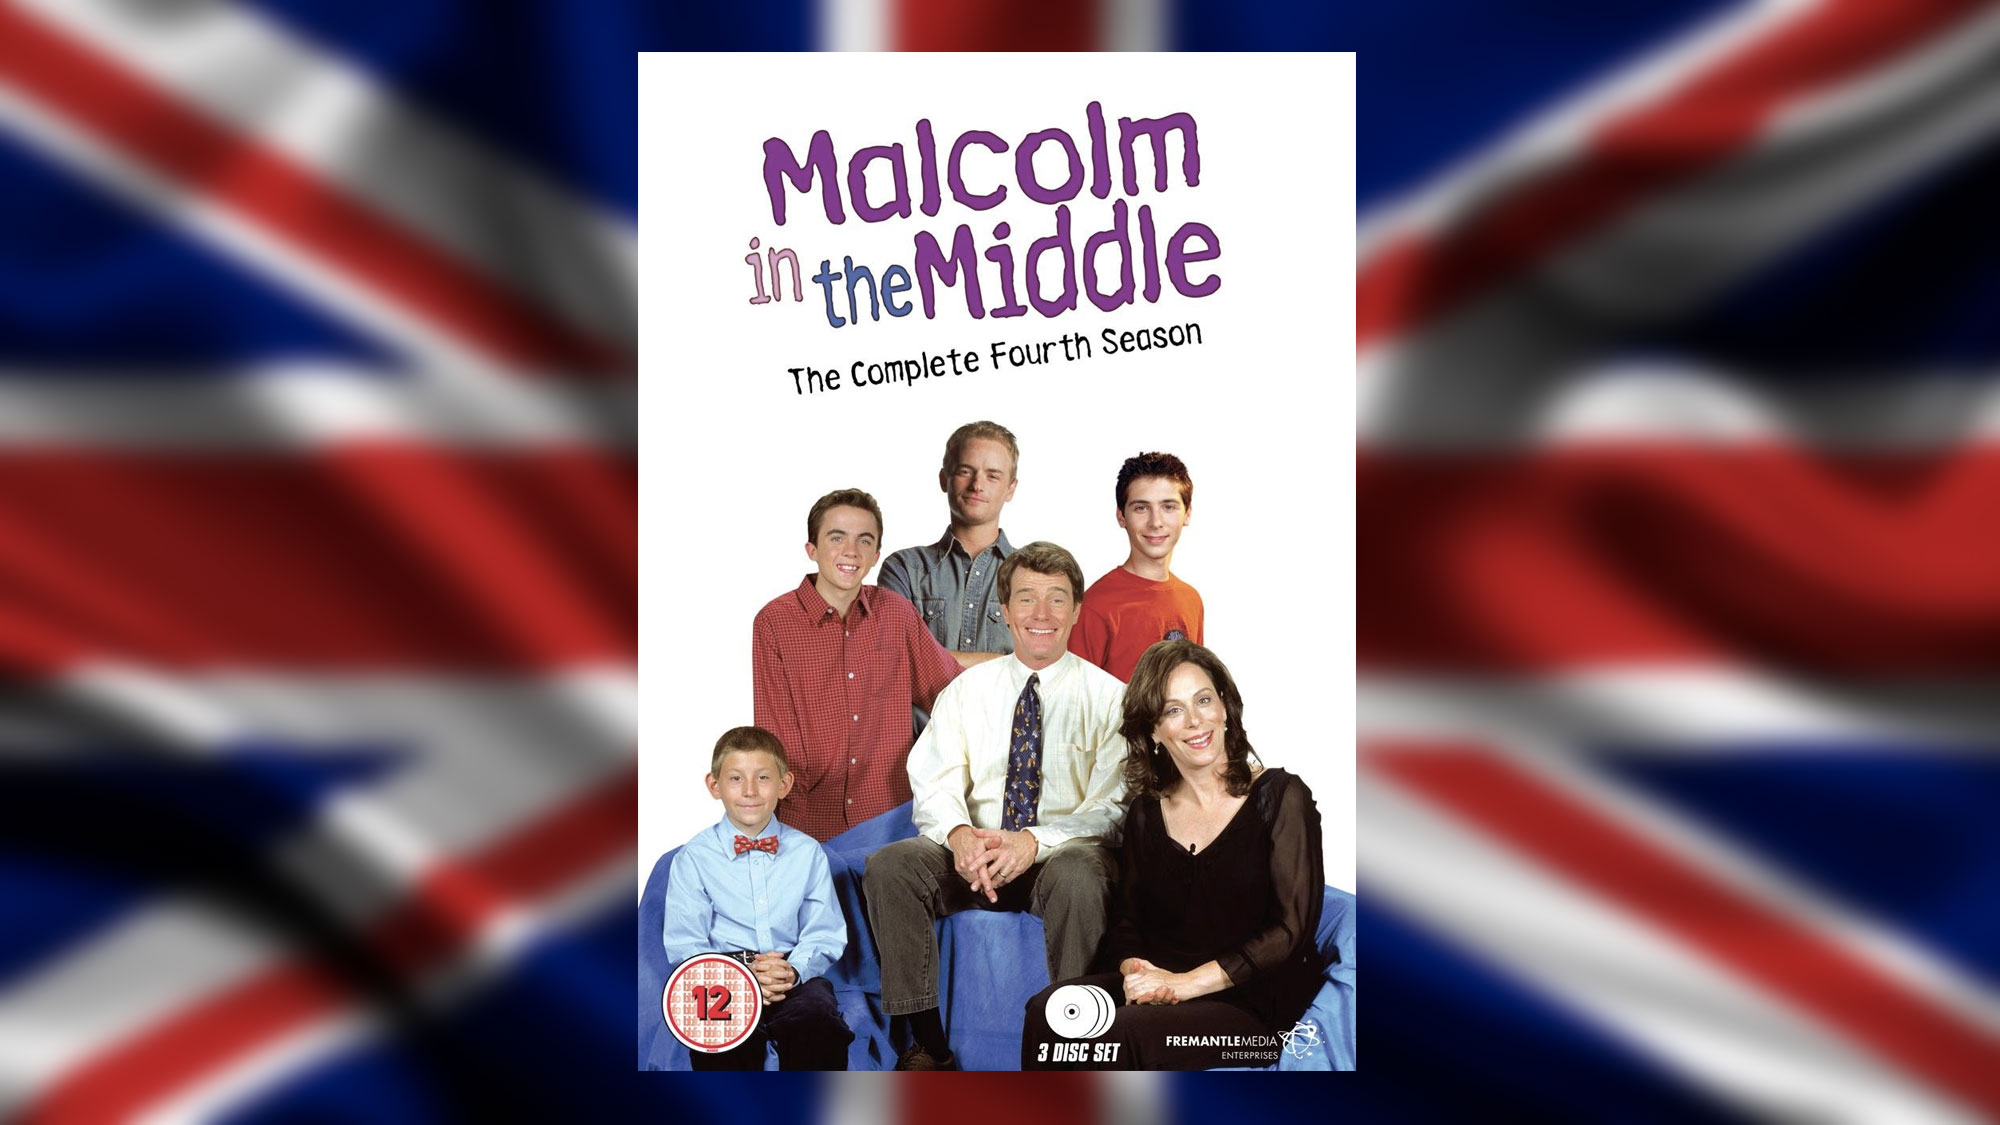 La saison 4 de <em>Malcolm</em> maintenant disponible en DVD